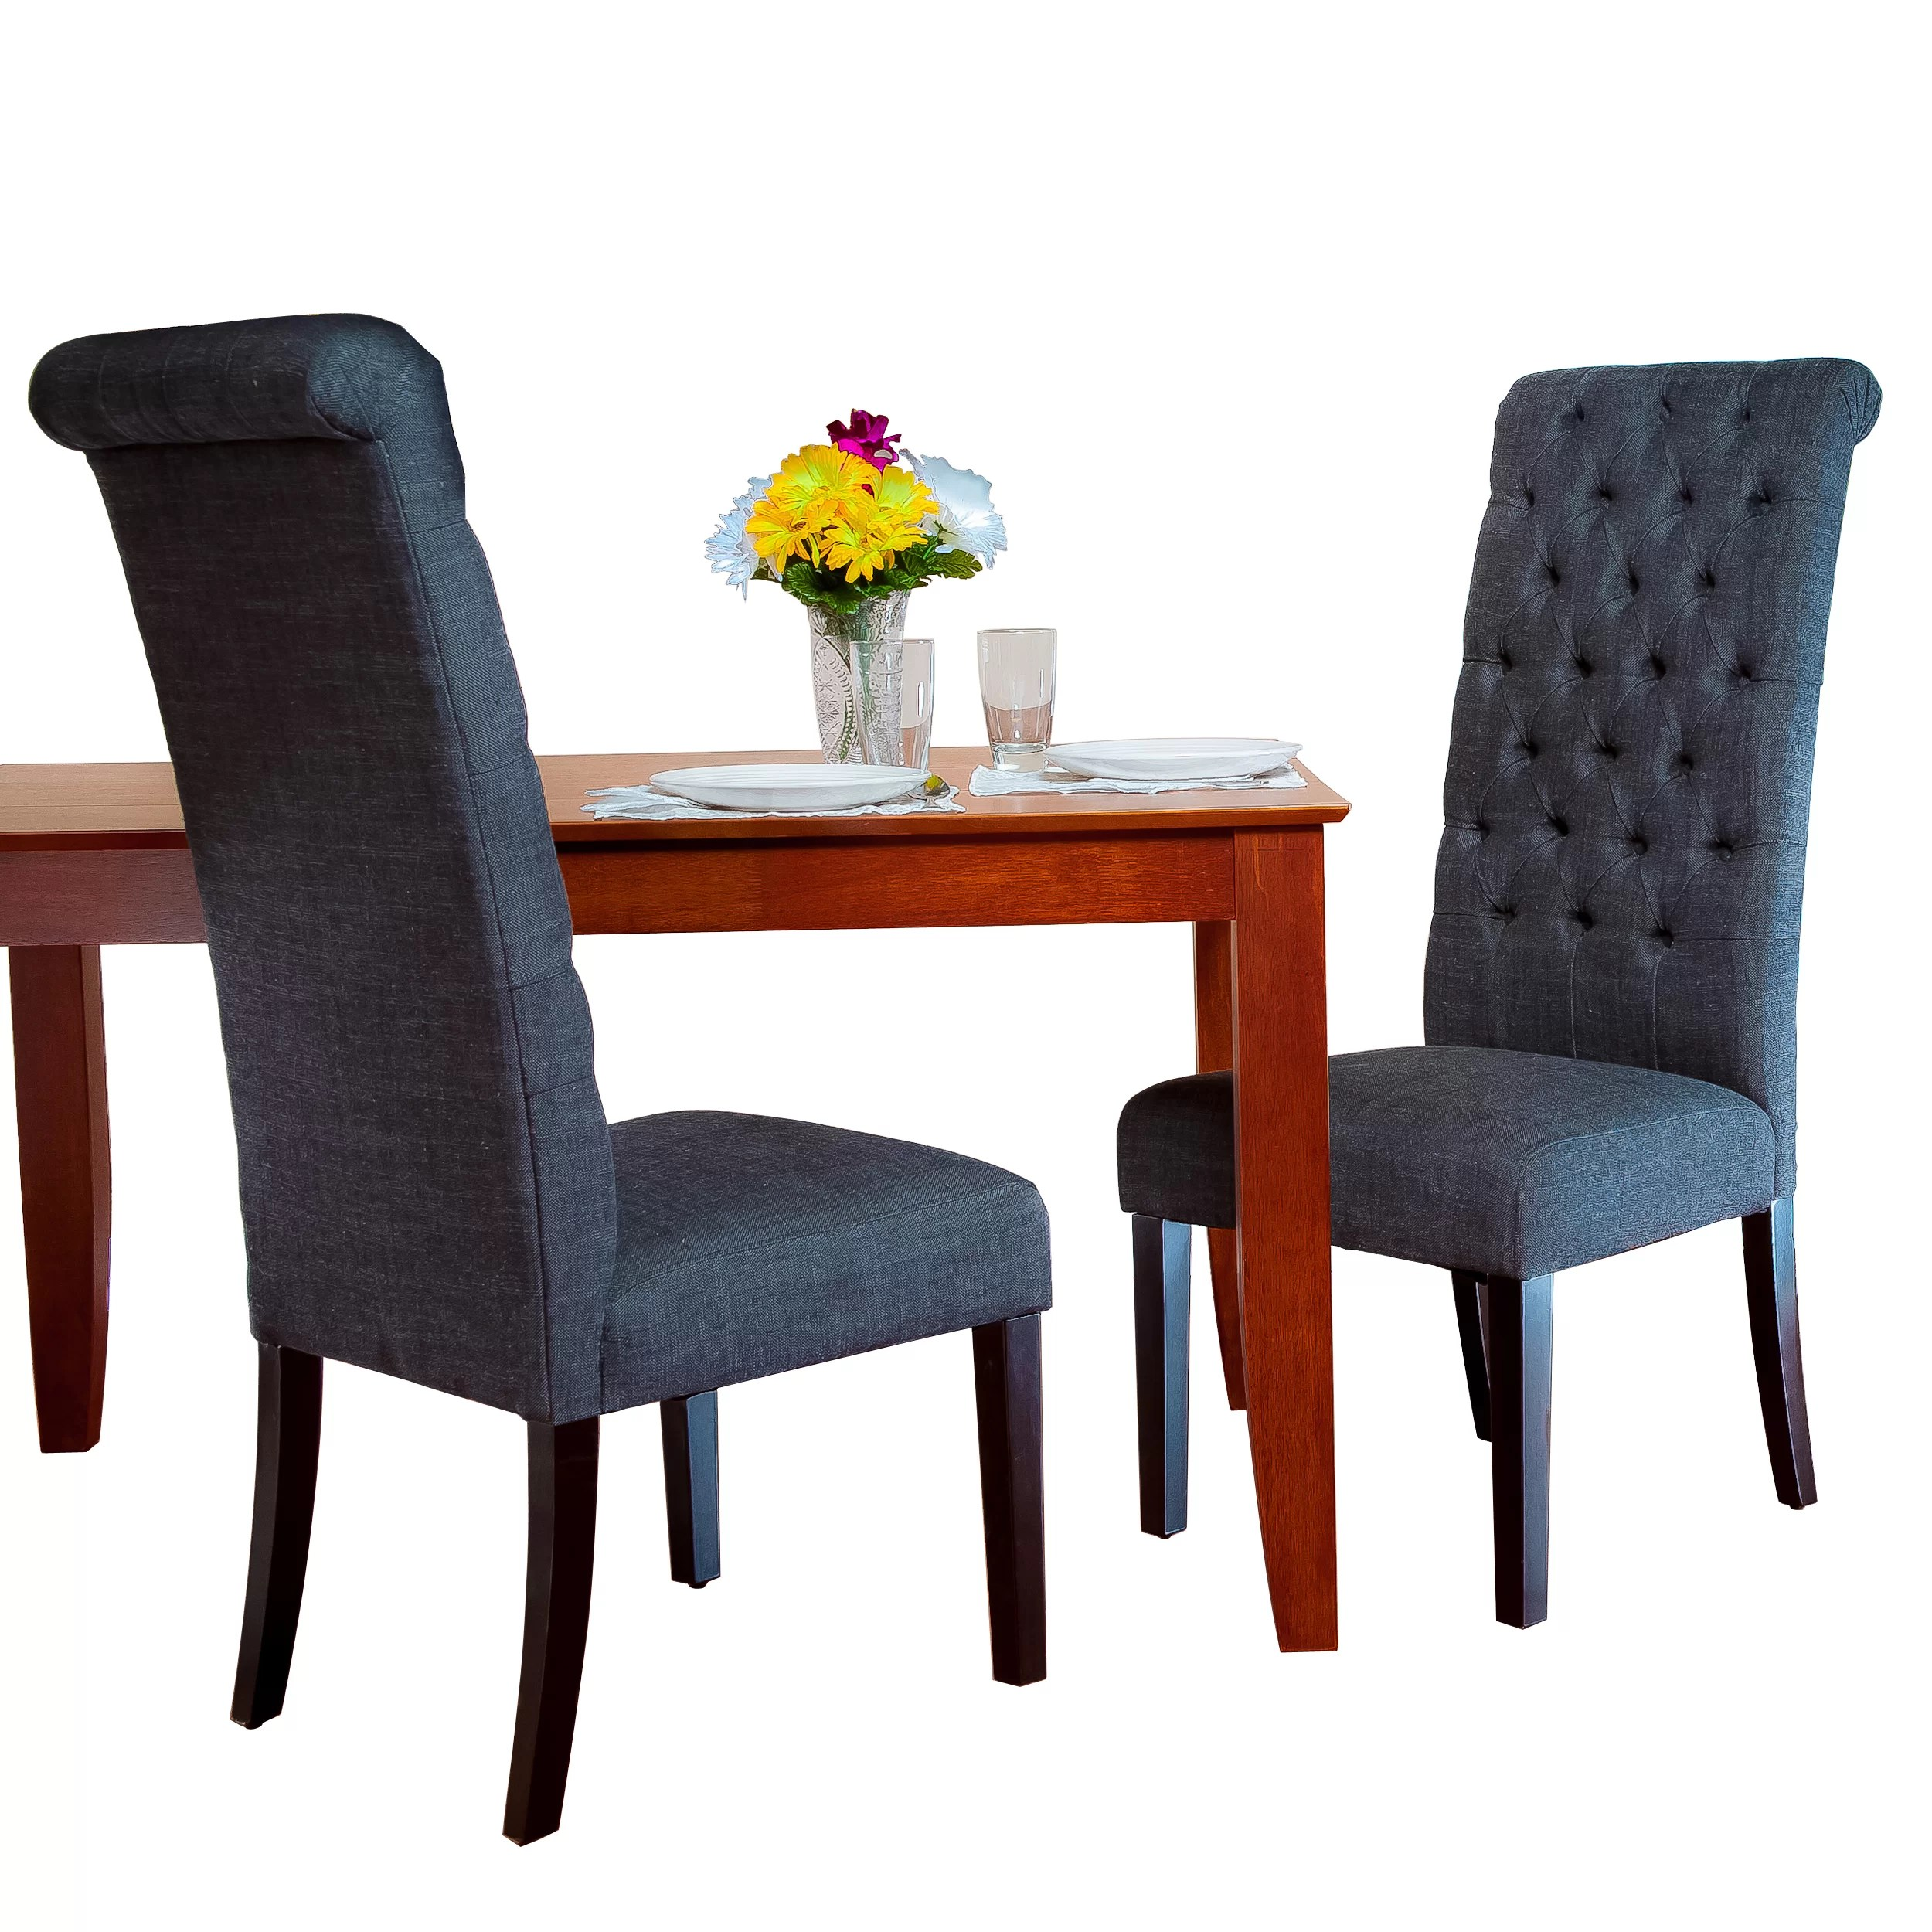 Wayfair Dining Chairs Charlton Home Estbury Tall Tufted Upholstered Dining Chair